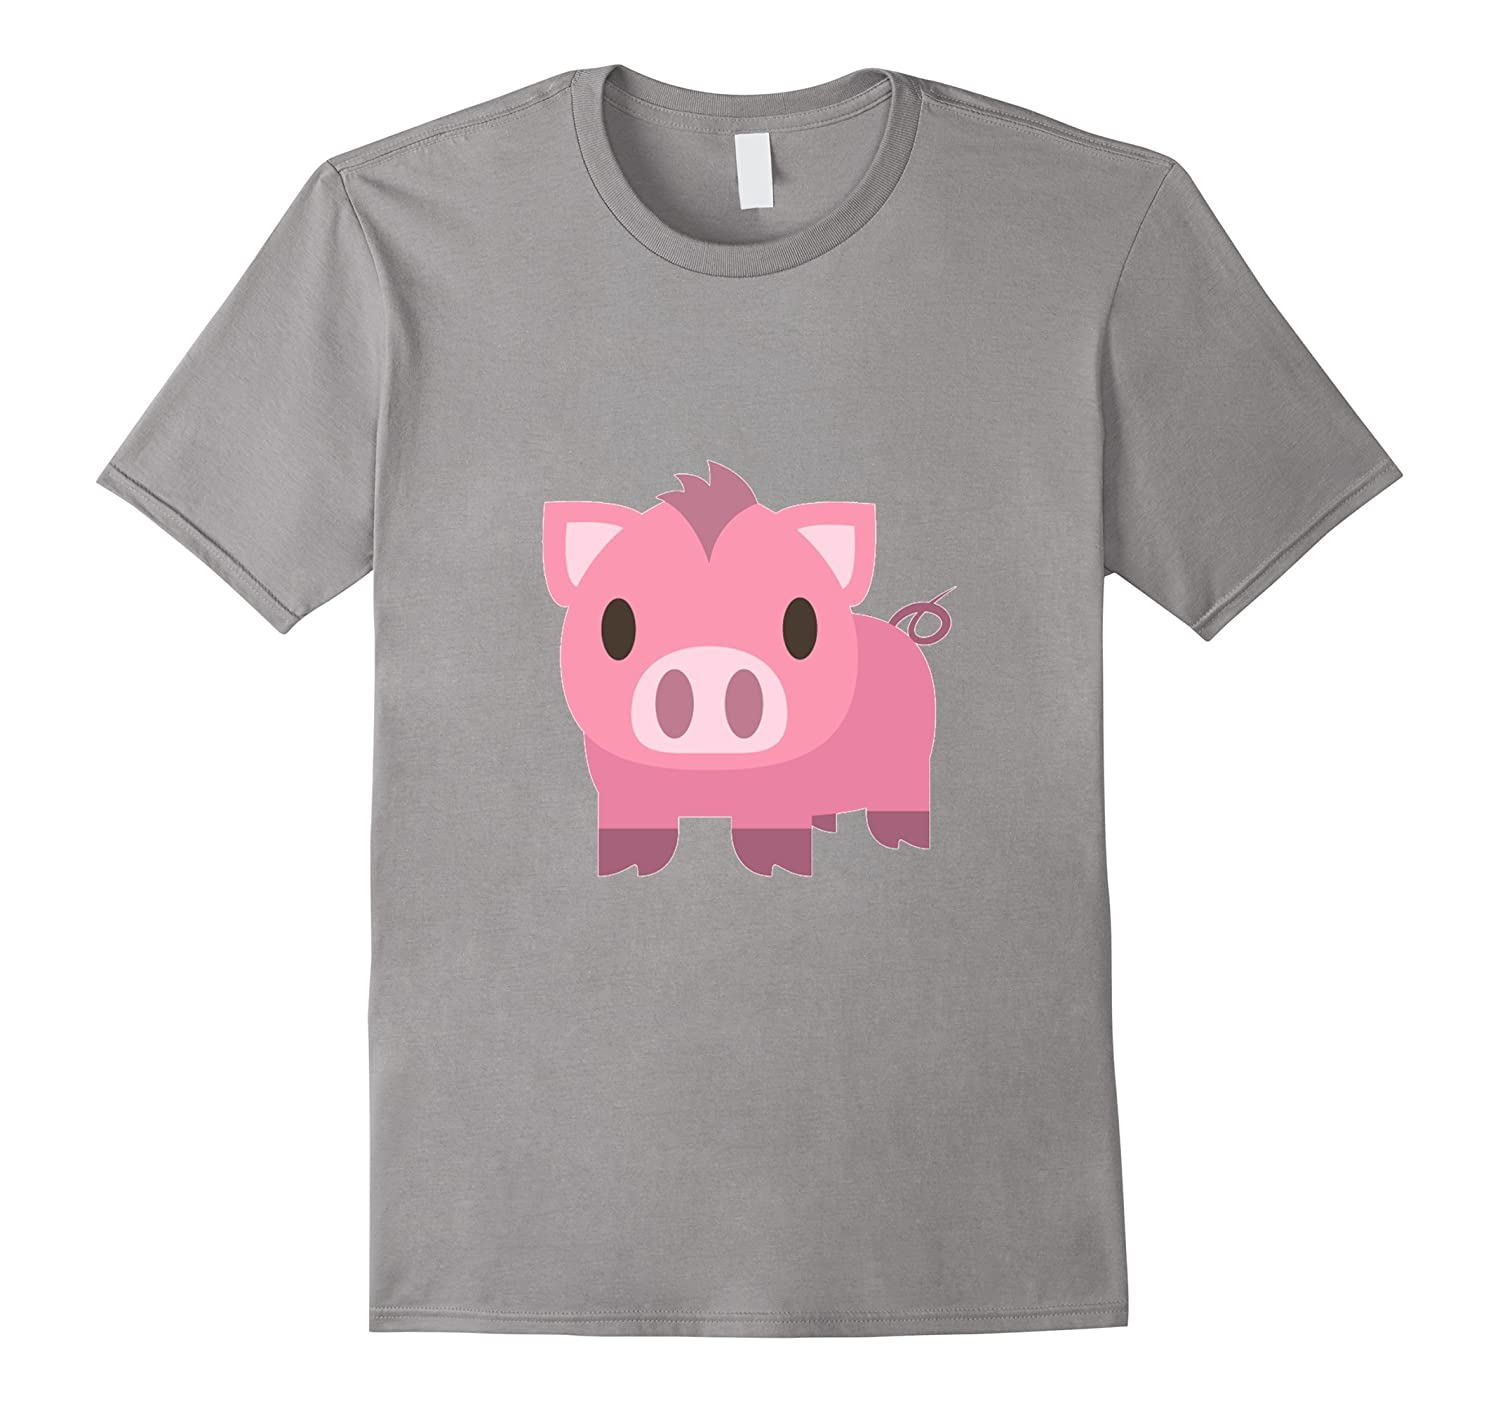 Pig Emoji T-Shirt Piglet Pink Oink Zoo Animal Mud Tail-Art